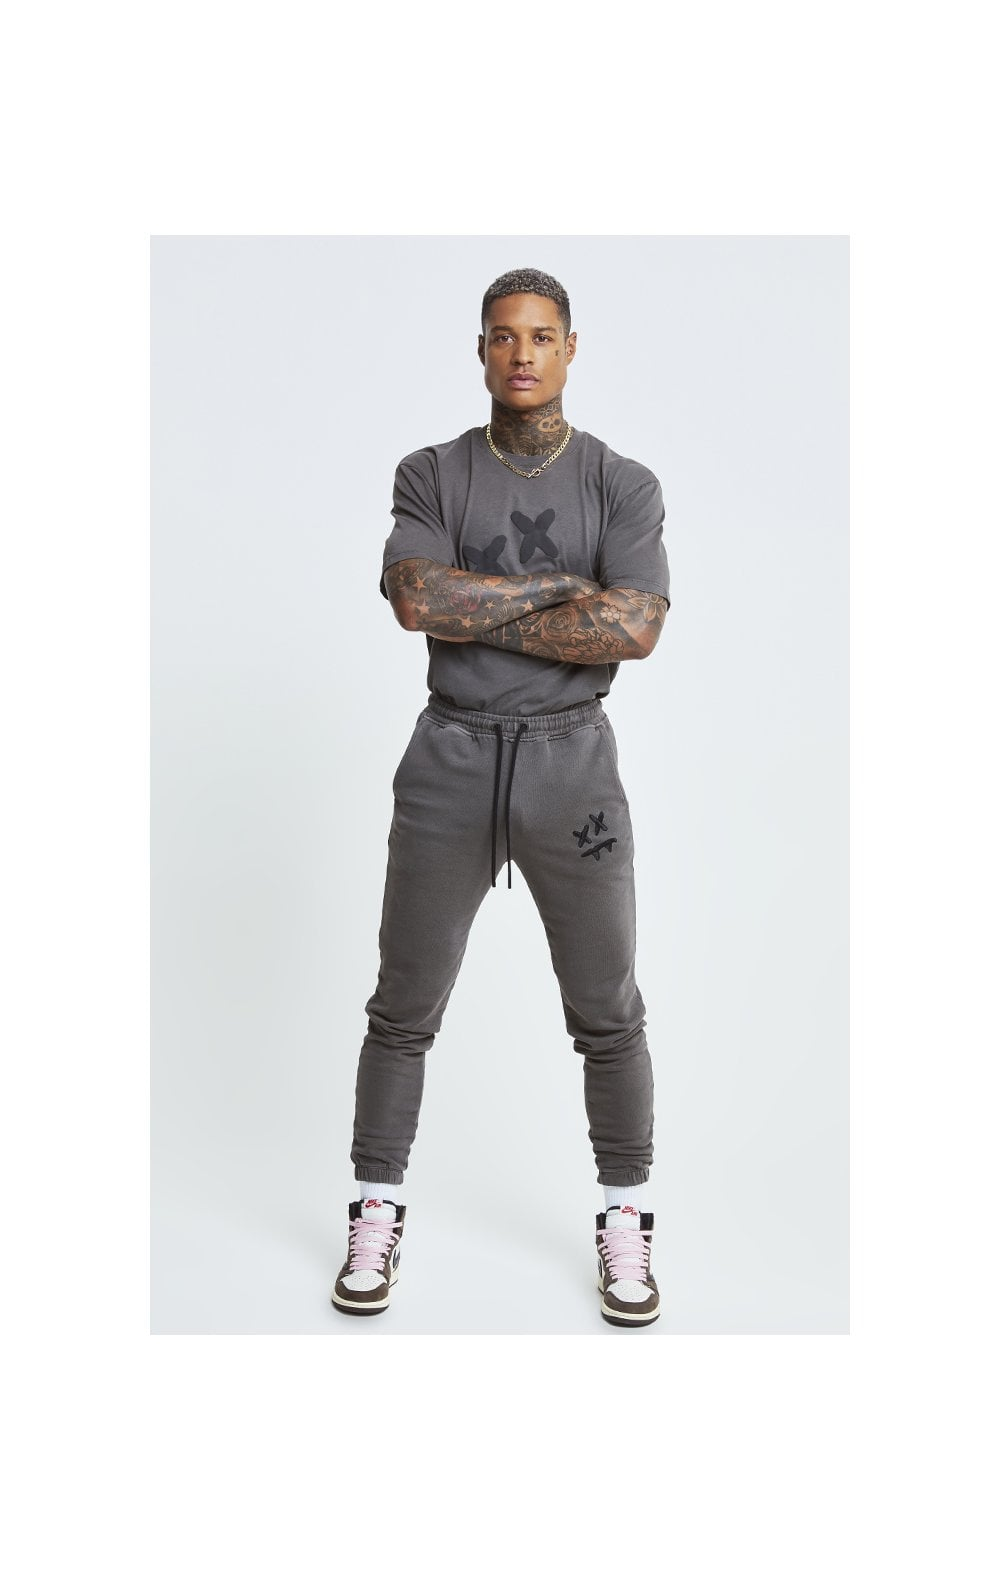 Load image into Gallery viewer, SikSilk X Steve Aoki Joggers - Washed Grey (2)